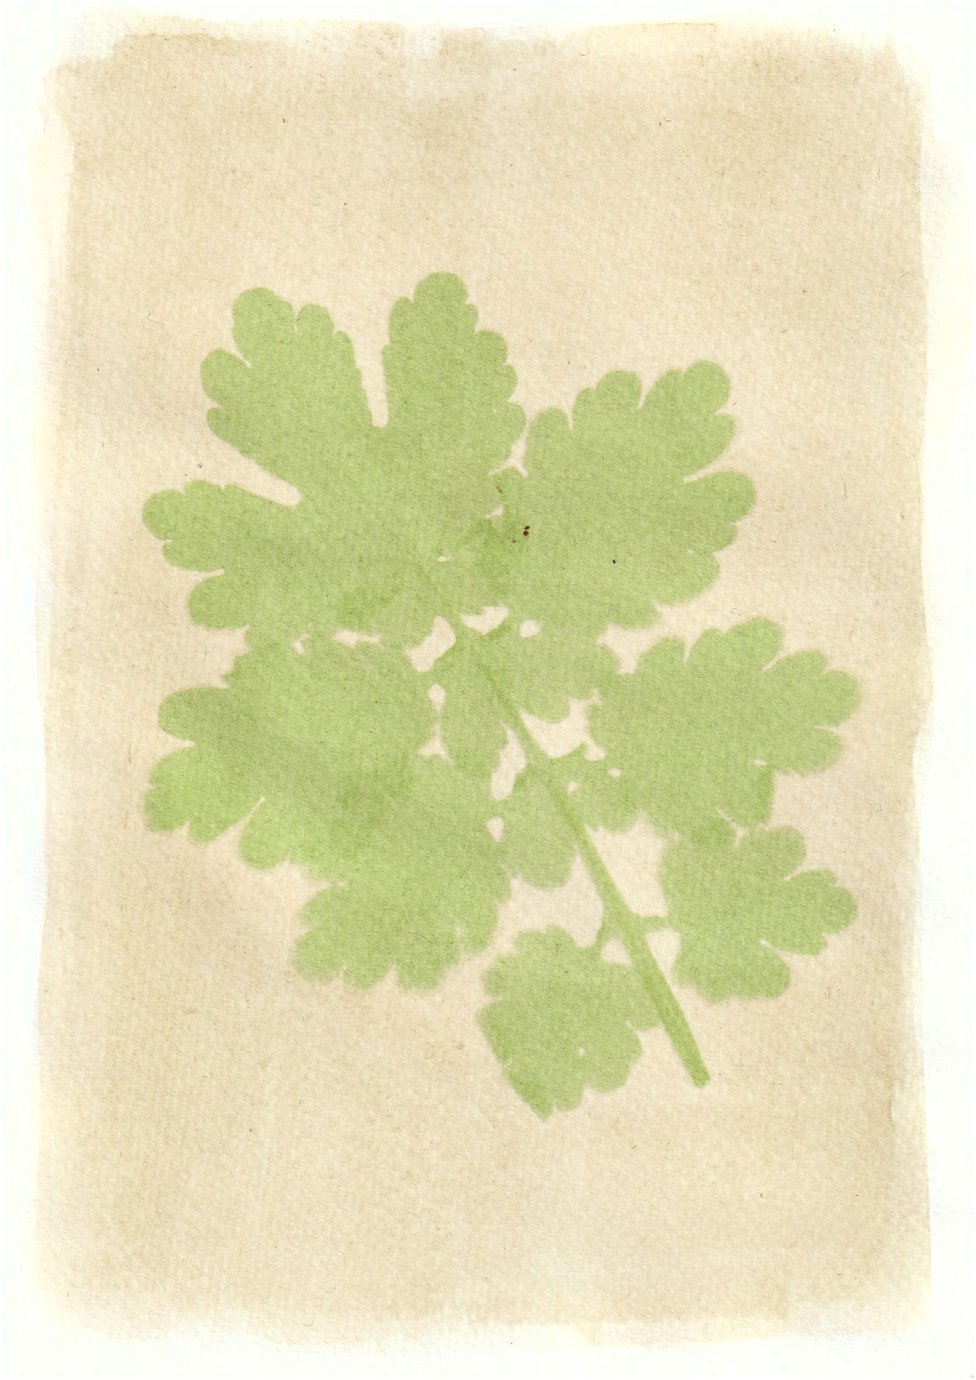 An anthotype print of a large green leaf